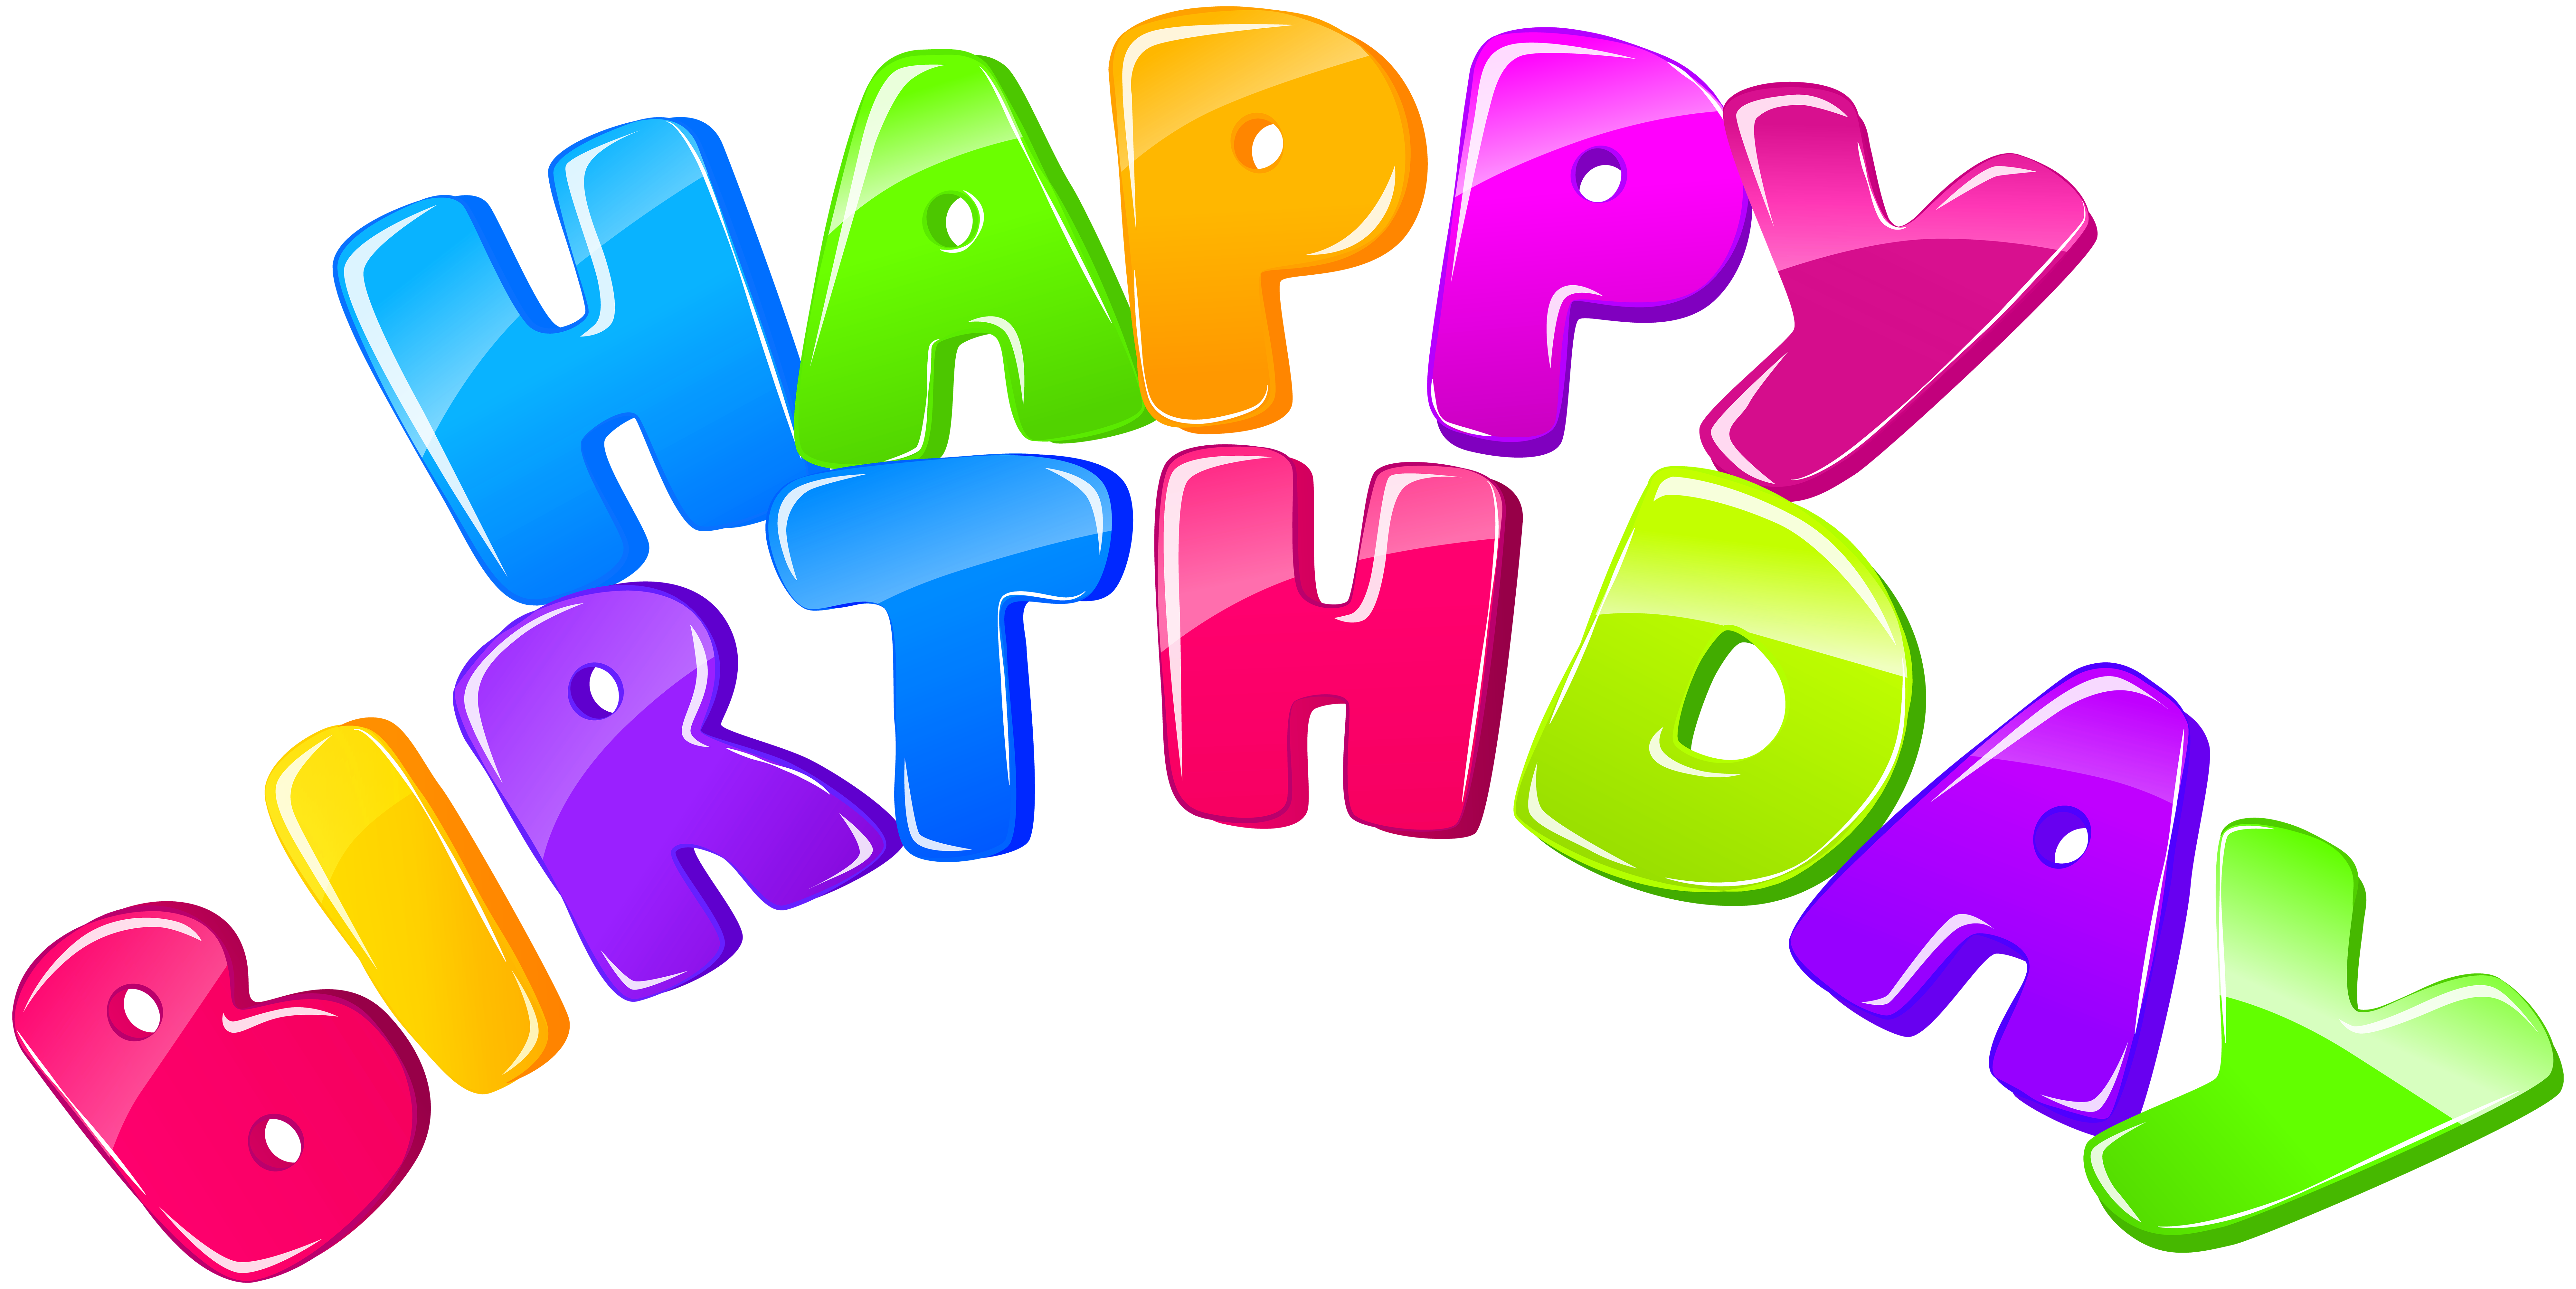 Happy clip art image. Birthday png images